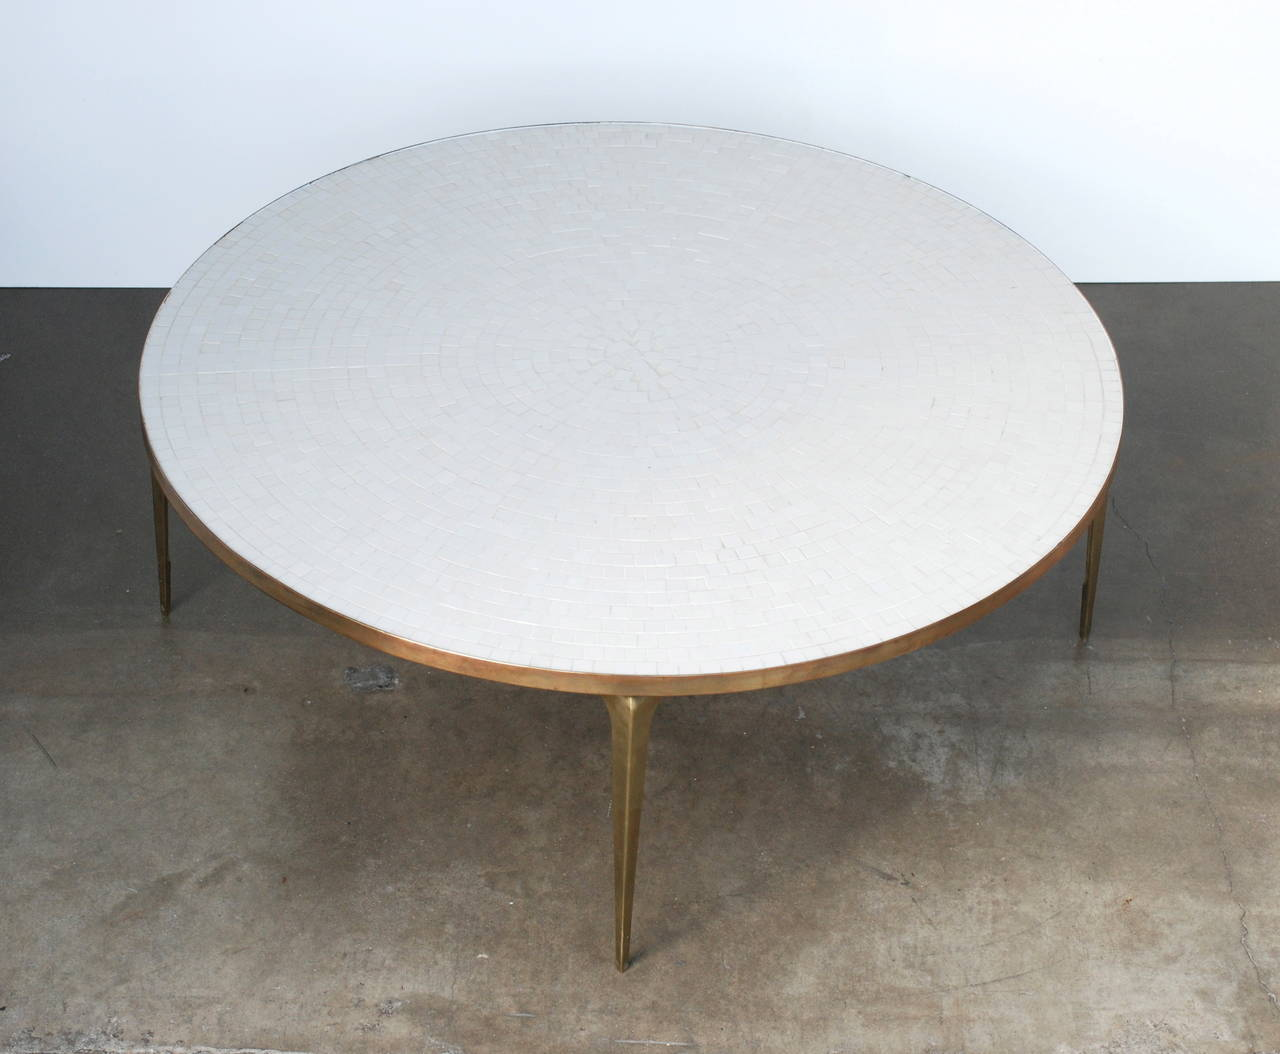 A beautiful table with pointed brass legs that are stamped made in japan the white